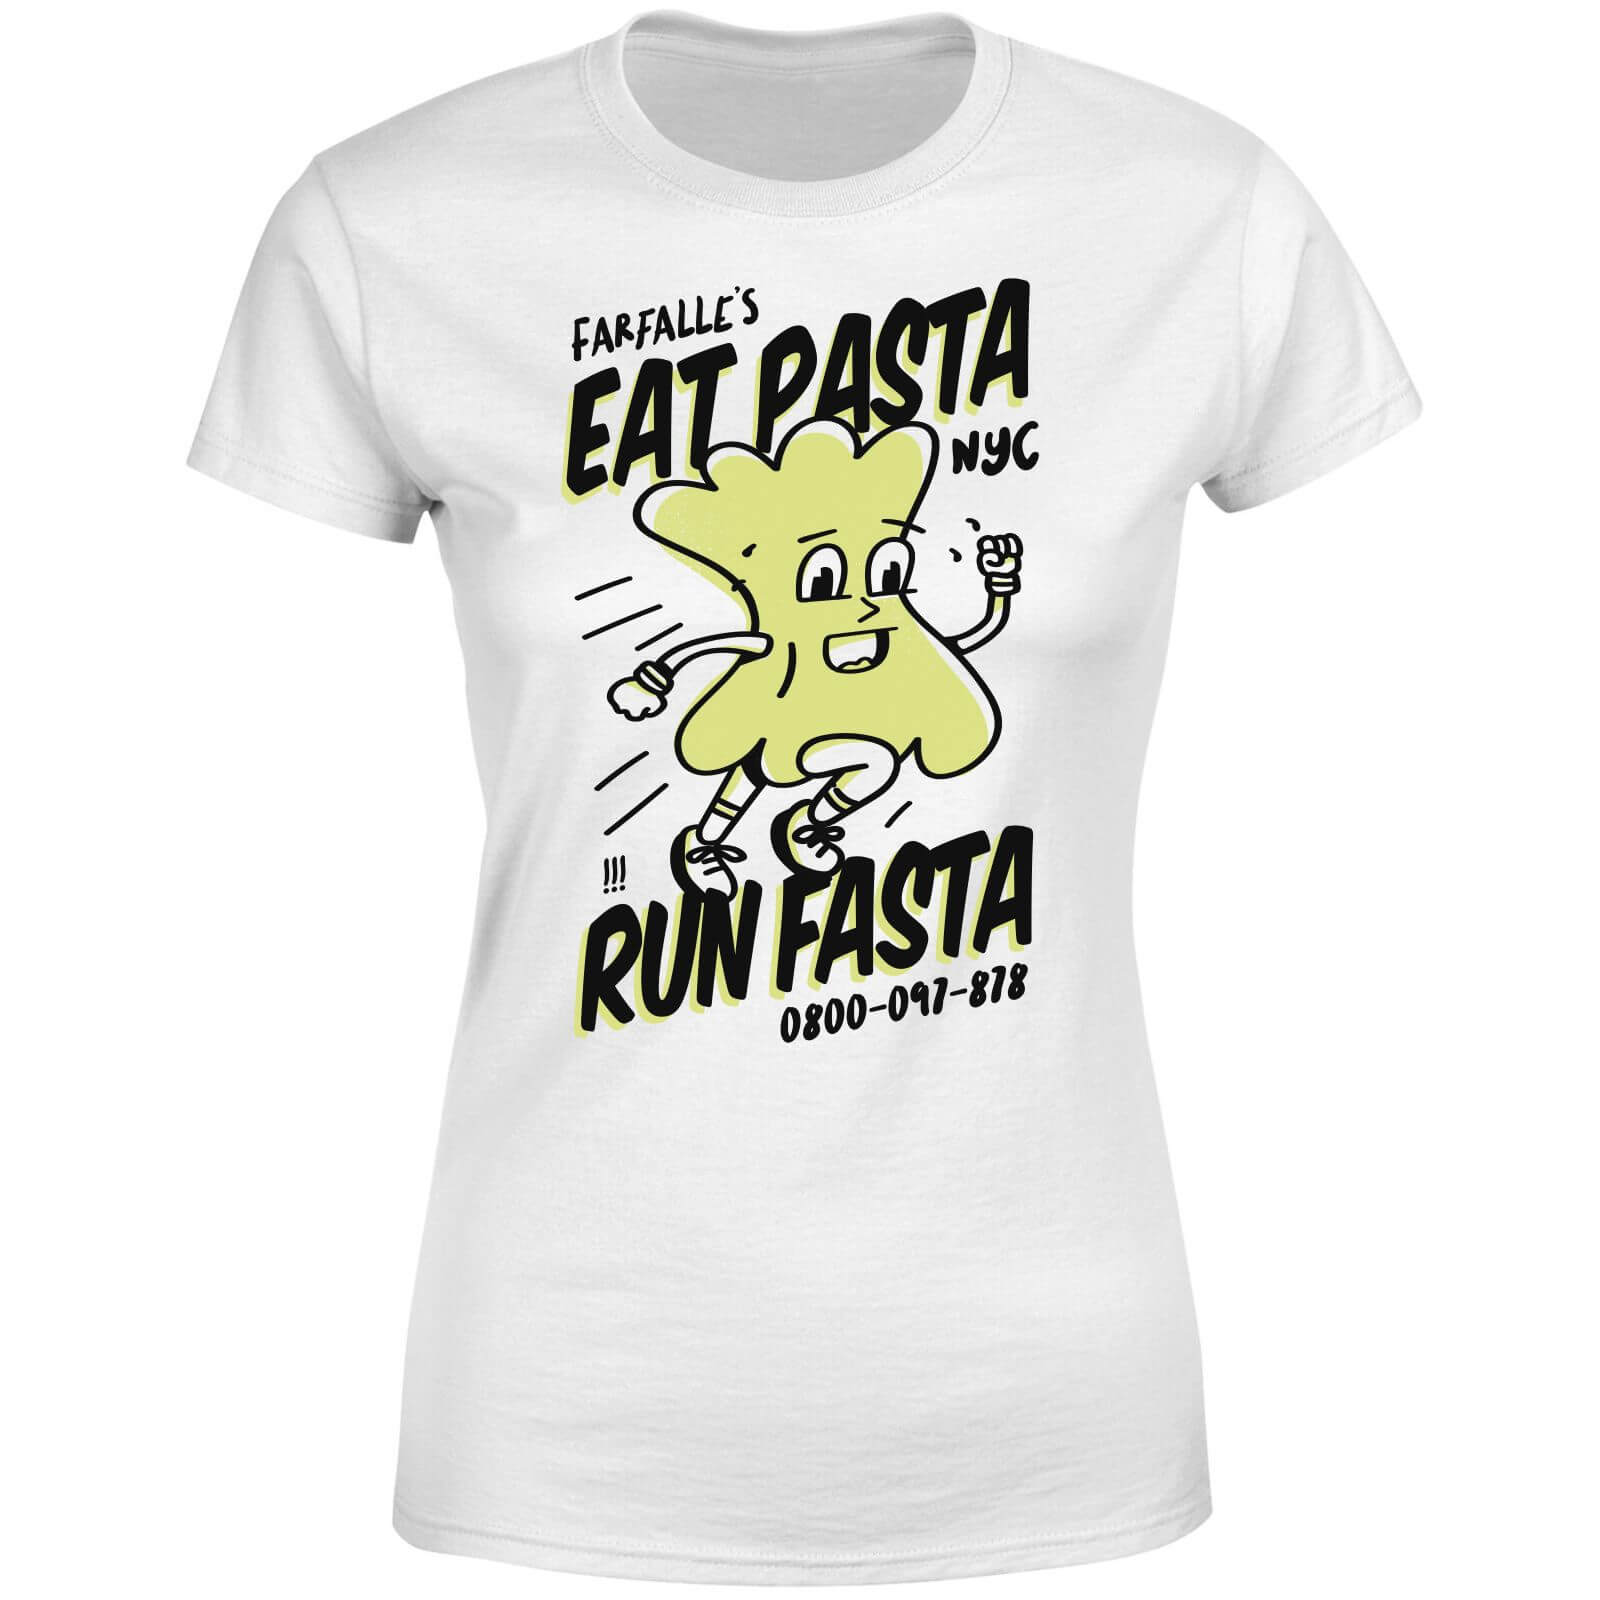 EAT PASTA RUN FASTA Women